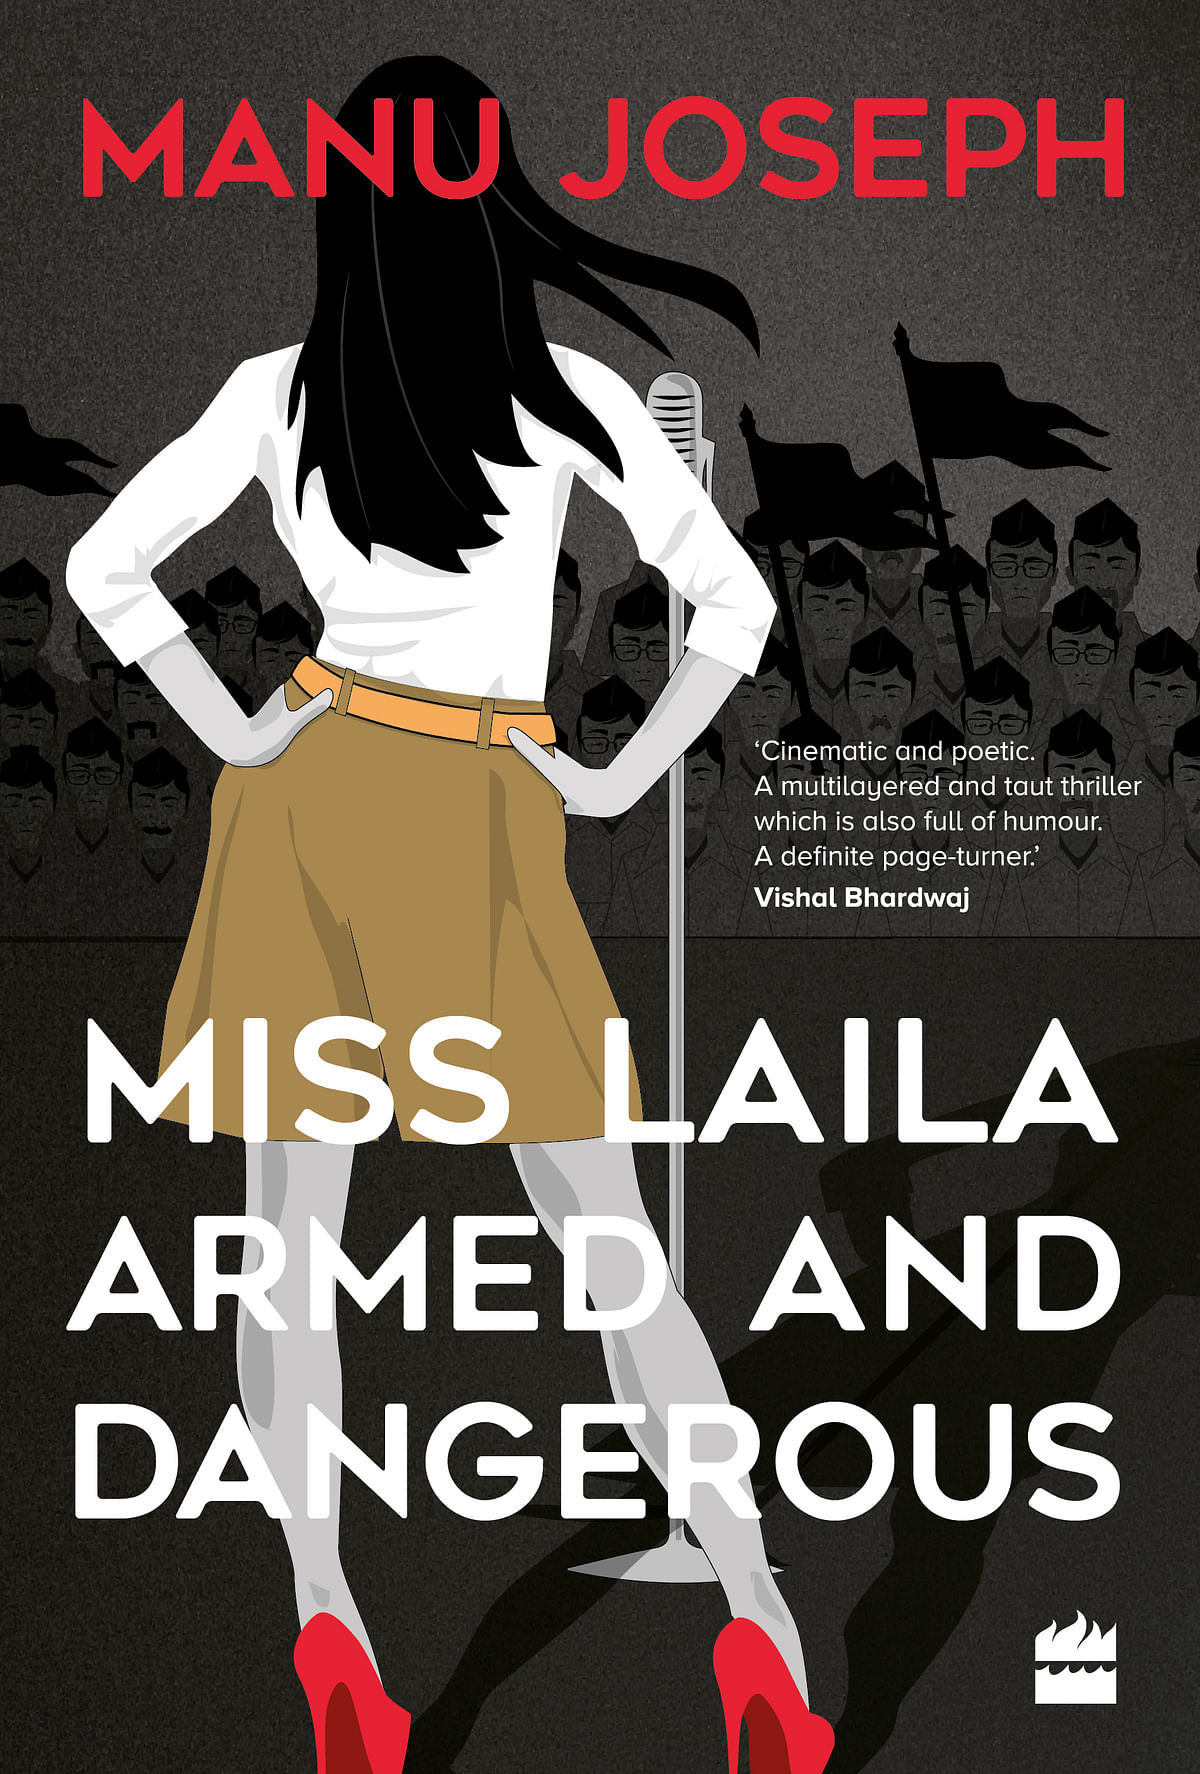 A cover of <i>Miss Laila, Armed and Dangerous</i>.